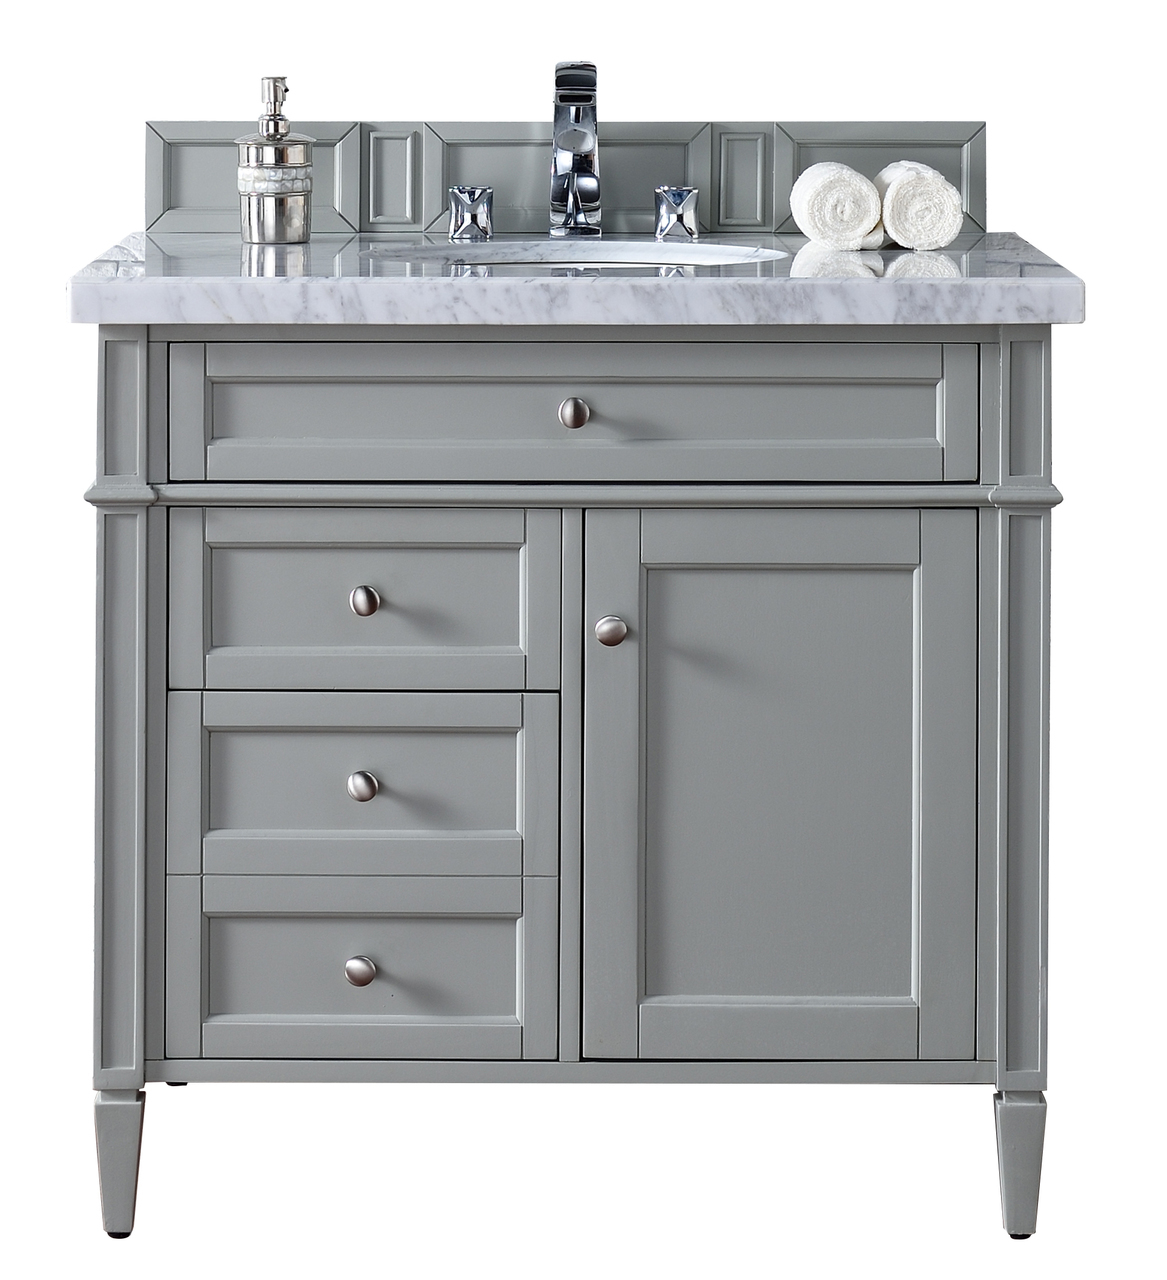 James martin brittany collection 36 single vanity urban gray for Restroom vanity